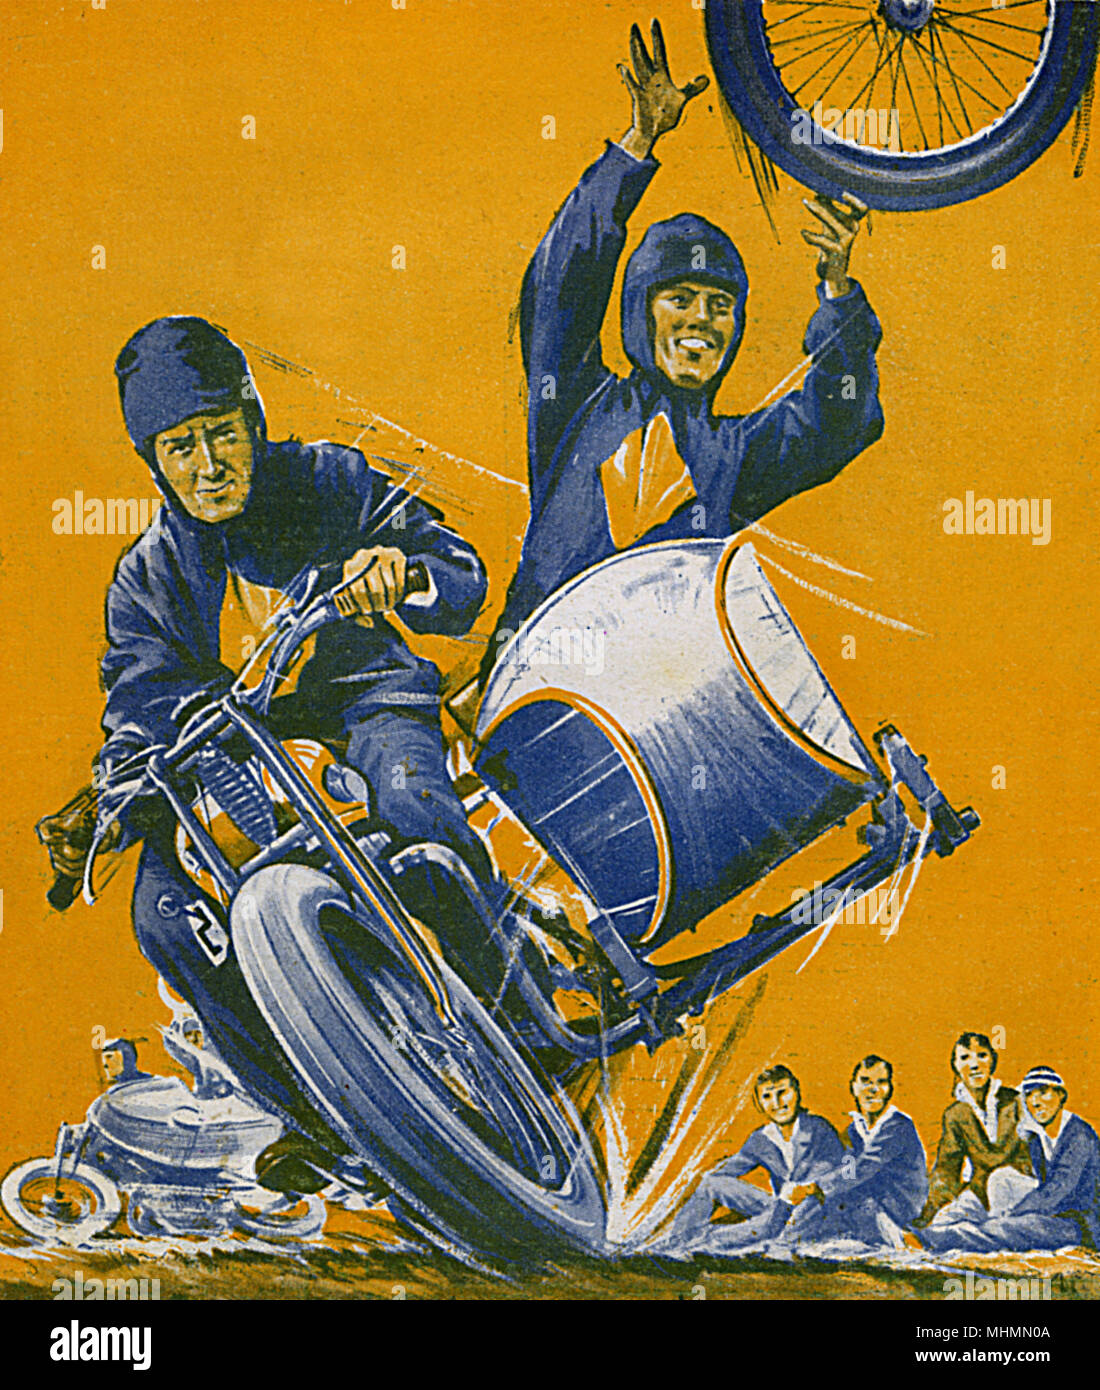 Stunt rides on a motorbike and sidecar perform one of their tricks, loosening and throwing away the sidecars wheel while continuing to ride at speed.     Date: 1932 - Stock Image